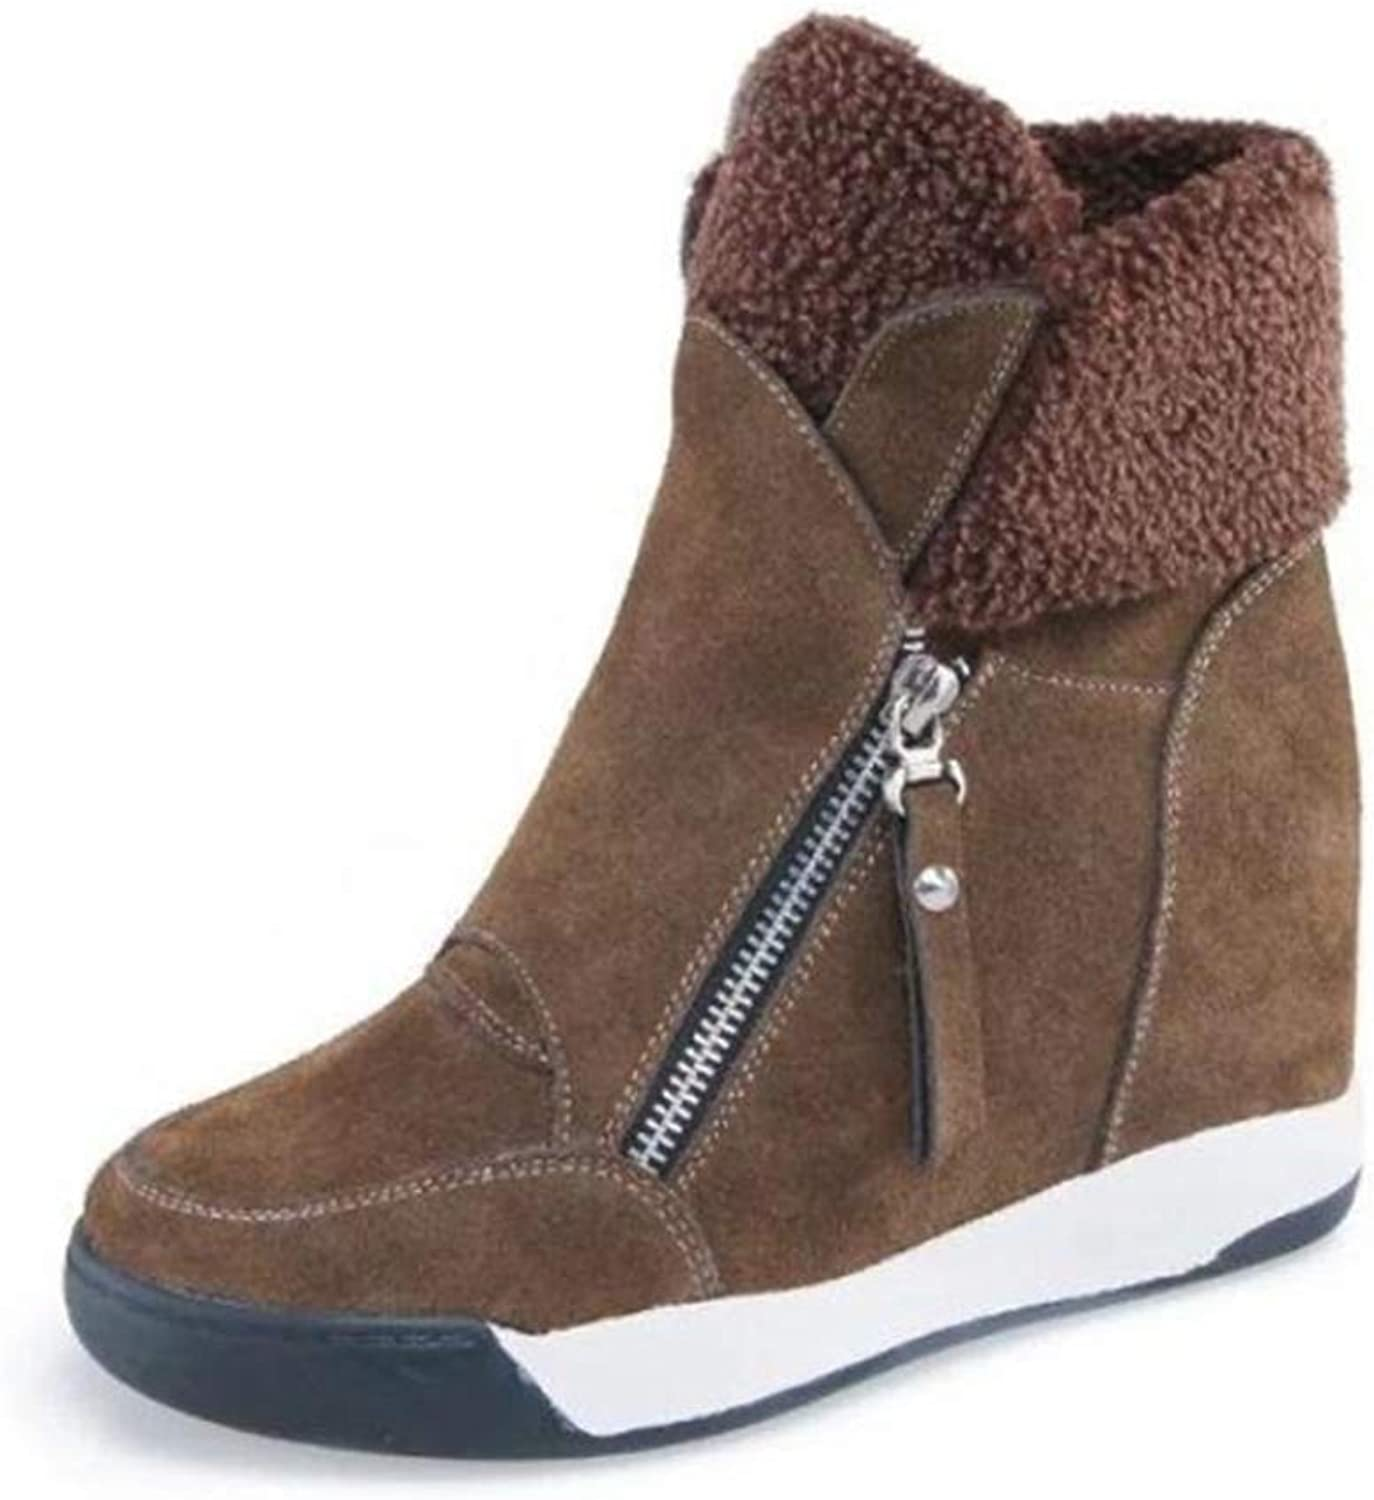 Super frist Women's Ankle Boots Fur Wedge Boots Winter Boots Snow Boots Block shoes